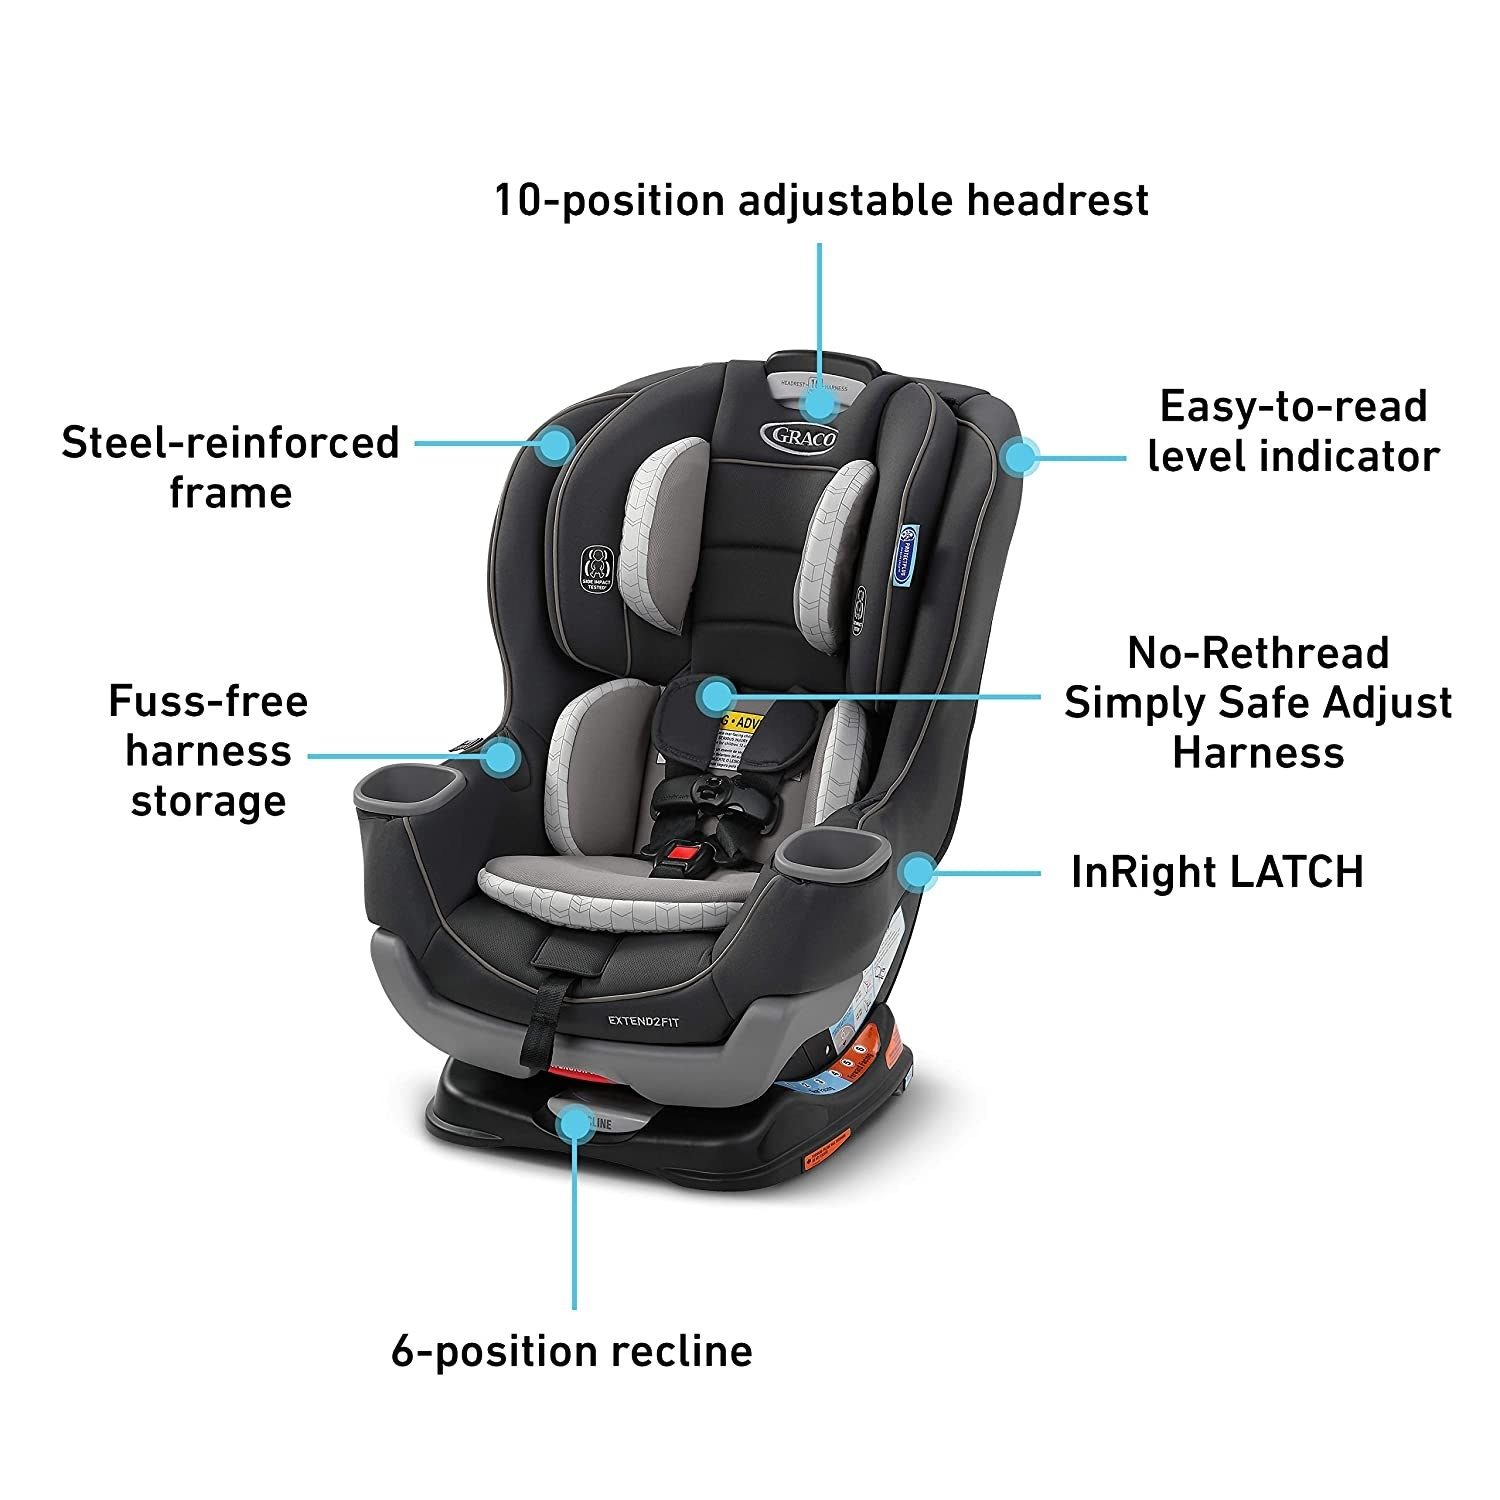 Infographic listing the car seat's features, which include 10 positions for the headrest, an easy to read level indicator, steel reinforced frame, fuss-free harness storage, and more